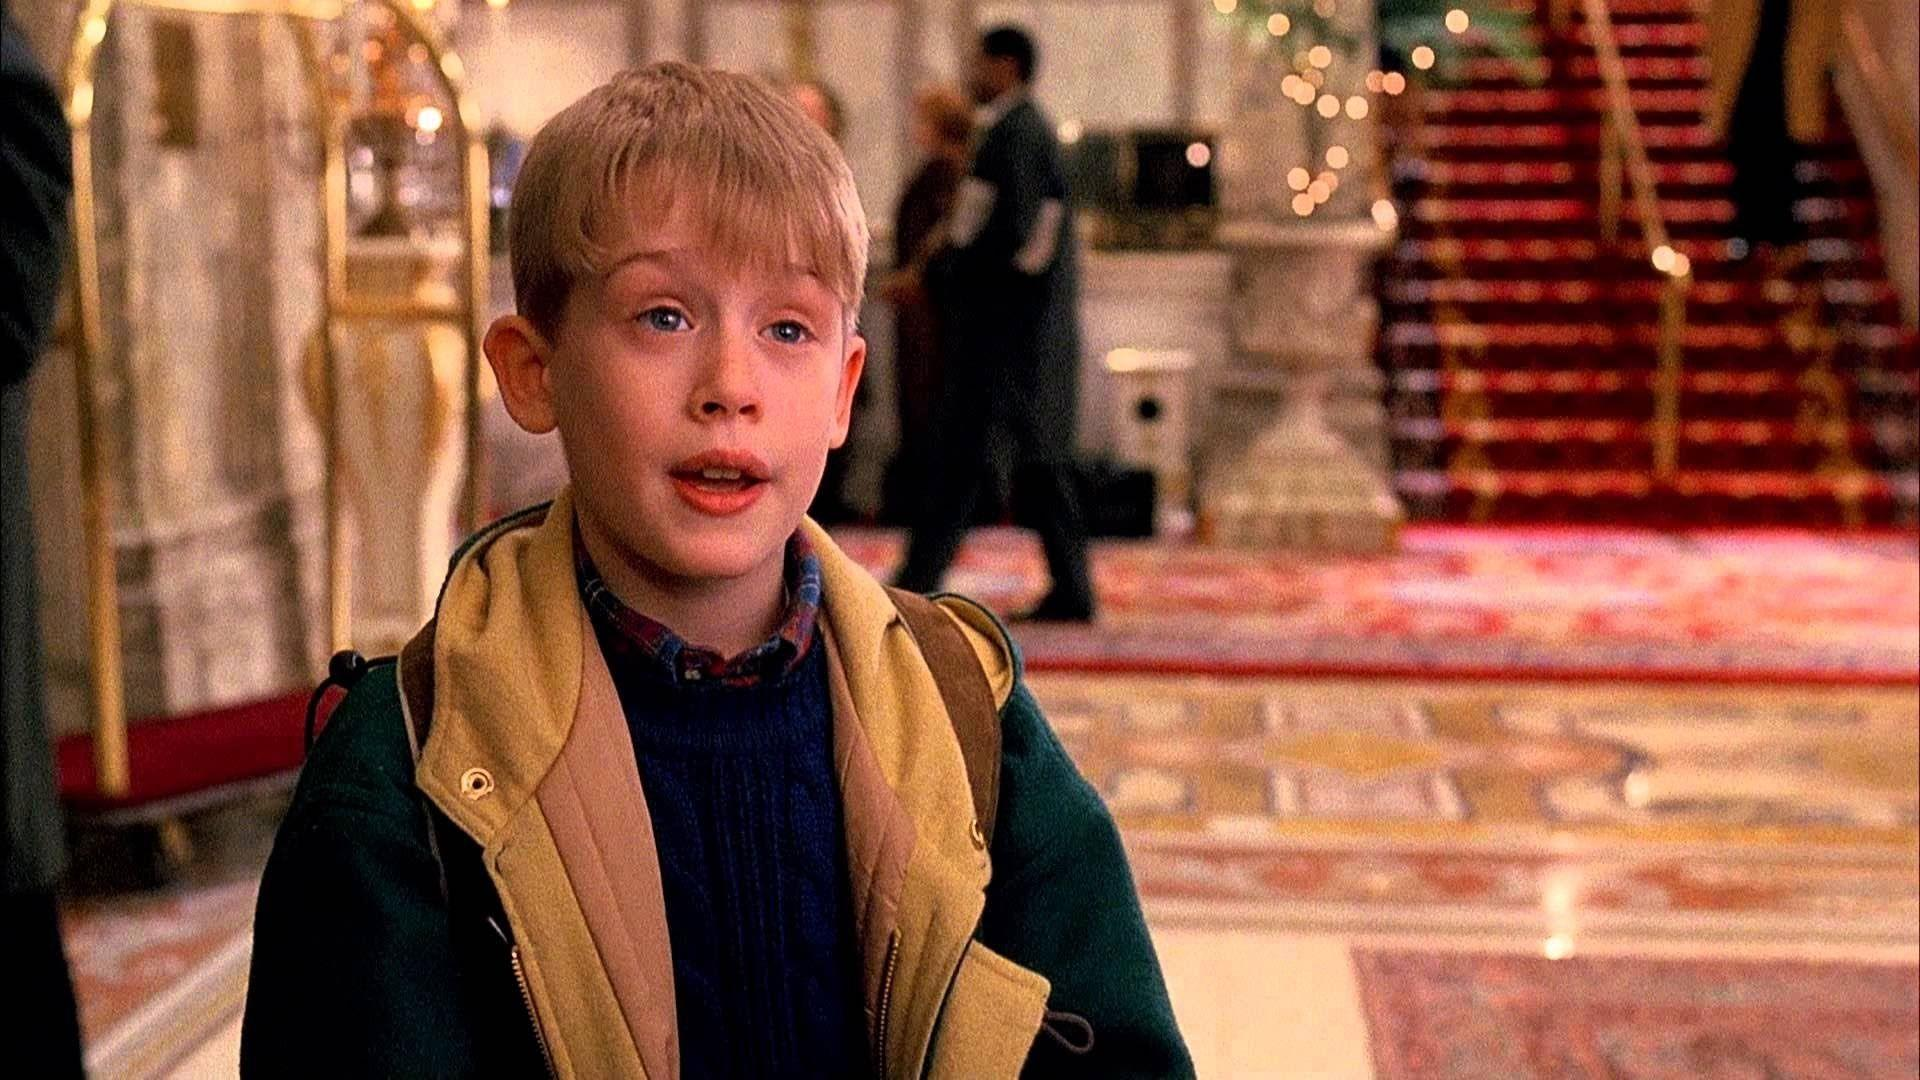 Home alone wallpapers wallpaper cave for Wallpaper home alone